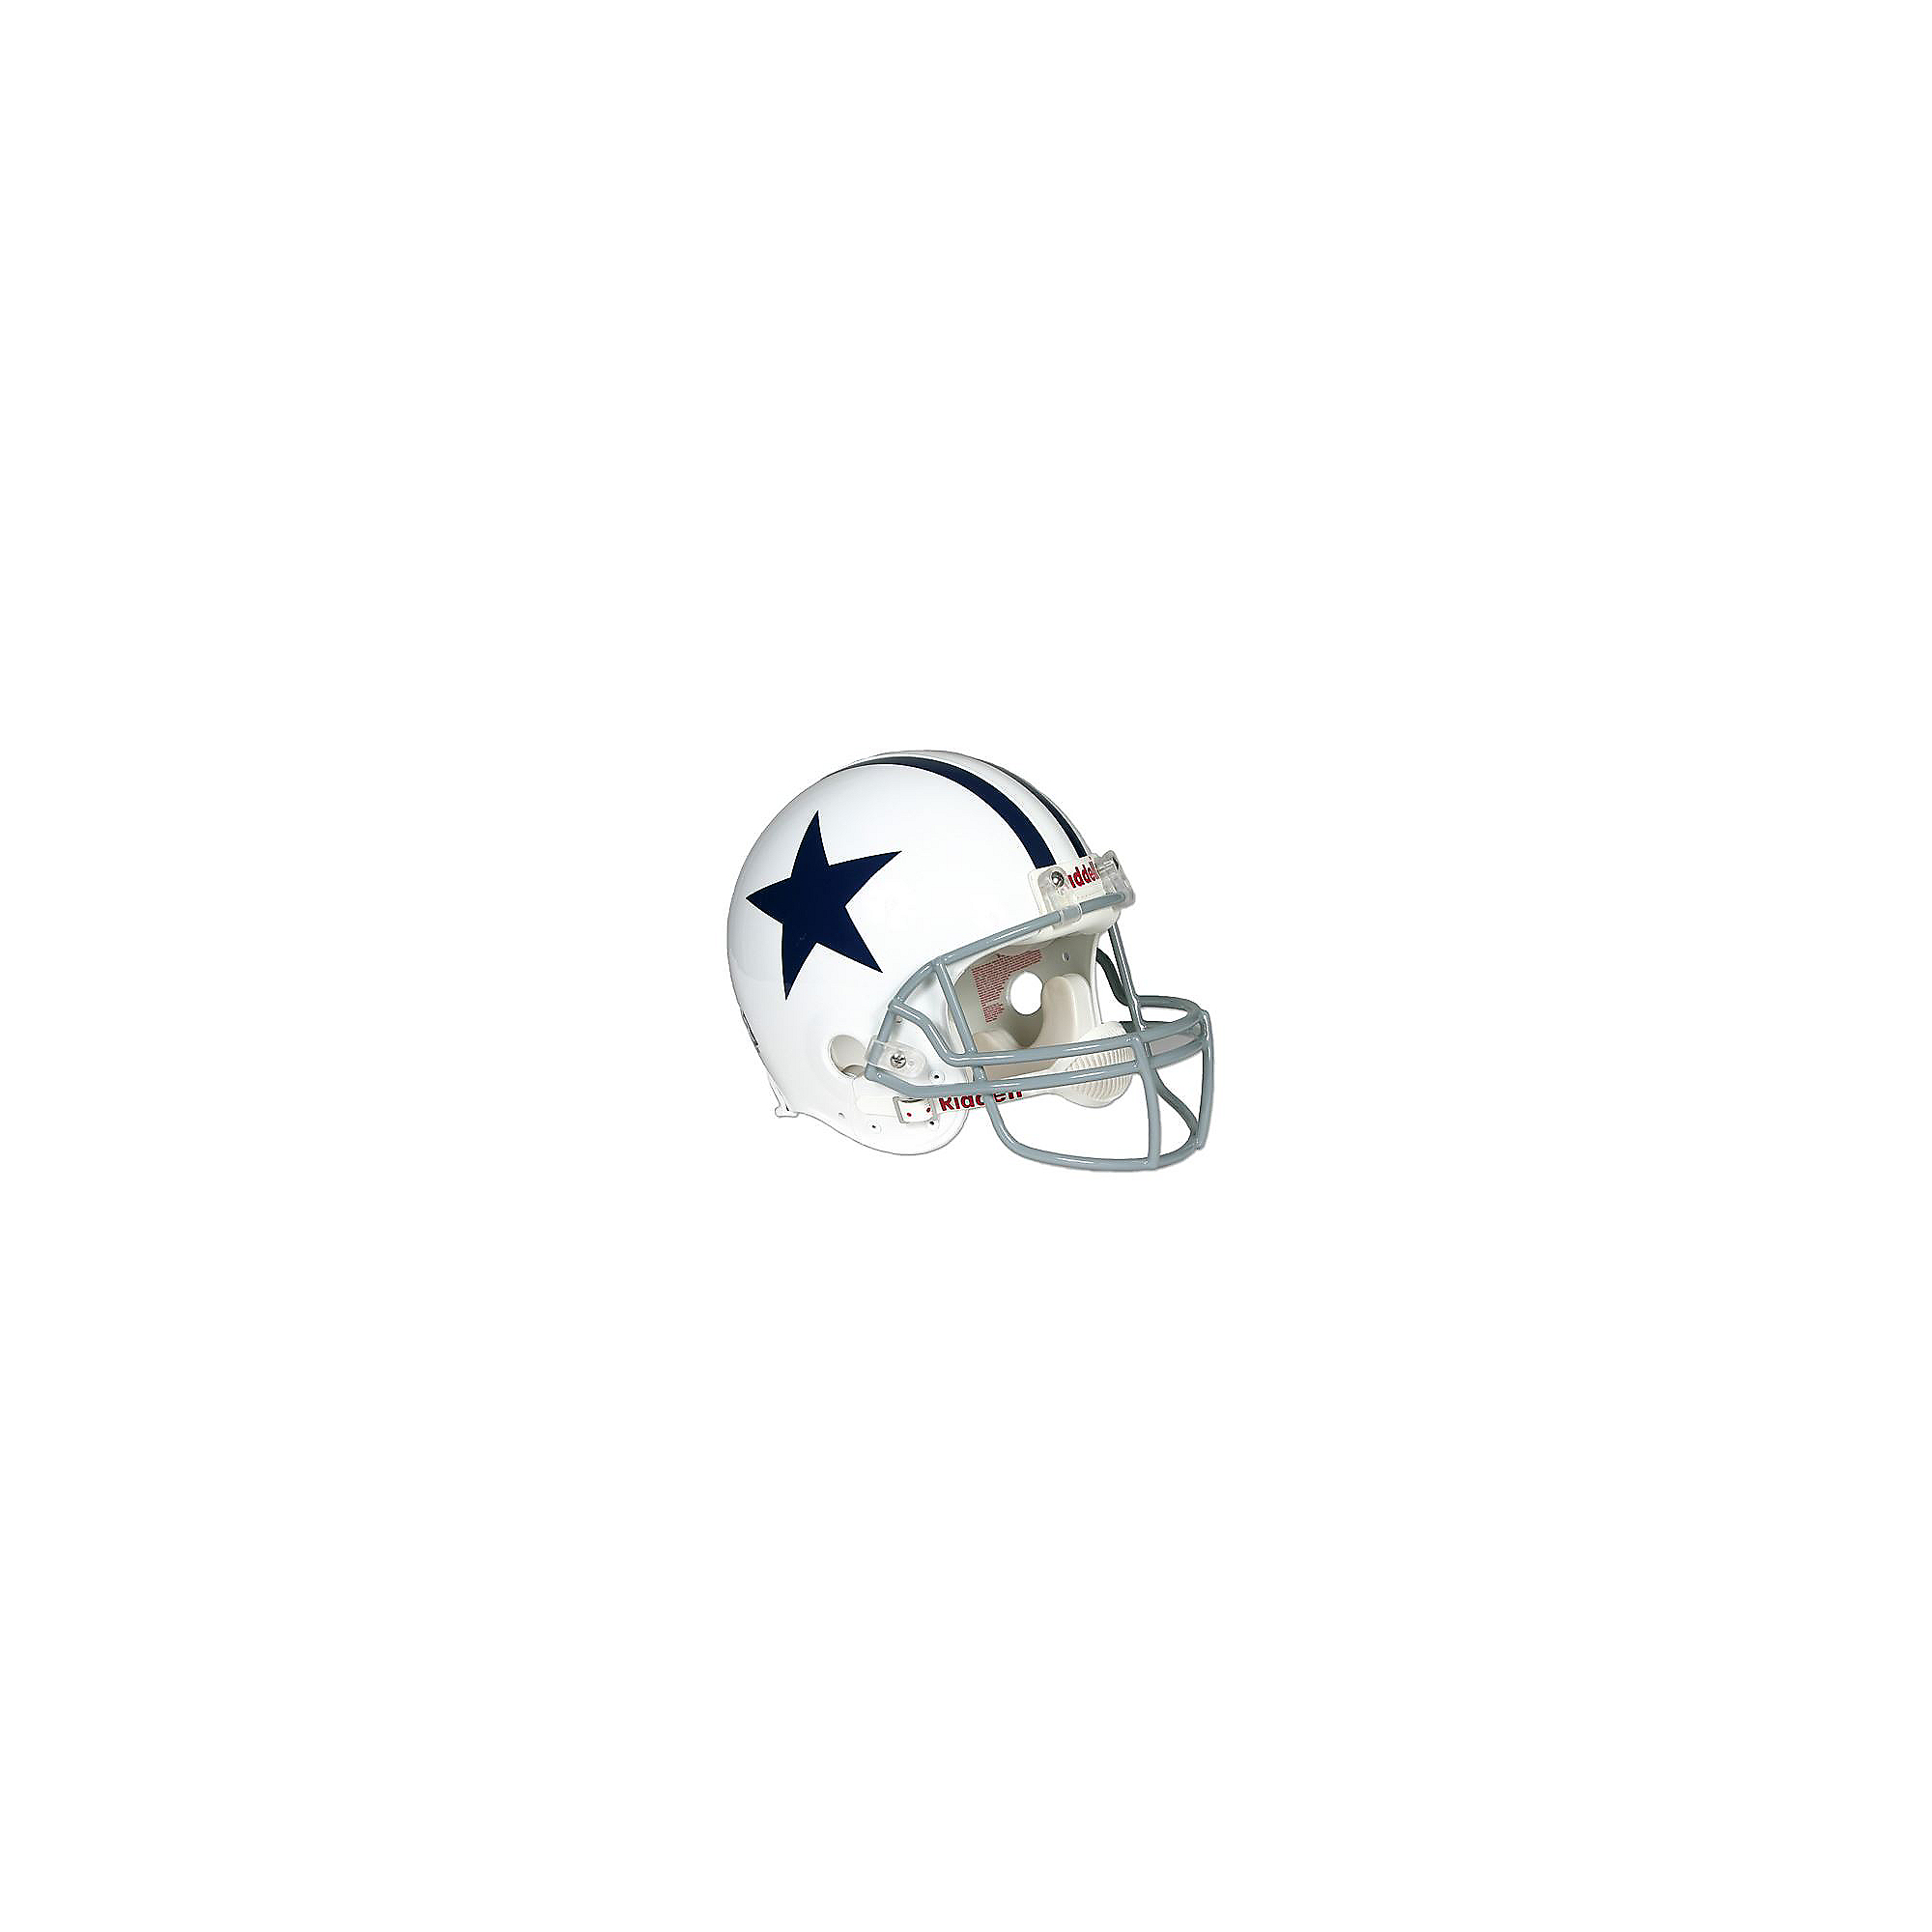 newest 327eb a6b64 Dallas Cowboys Replica Throwback Helmet   Dallas Cowboys Pro Shop